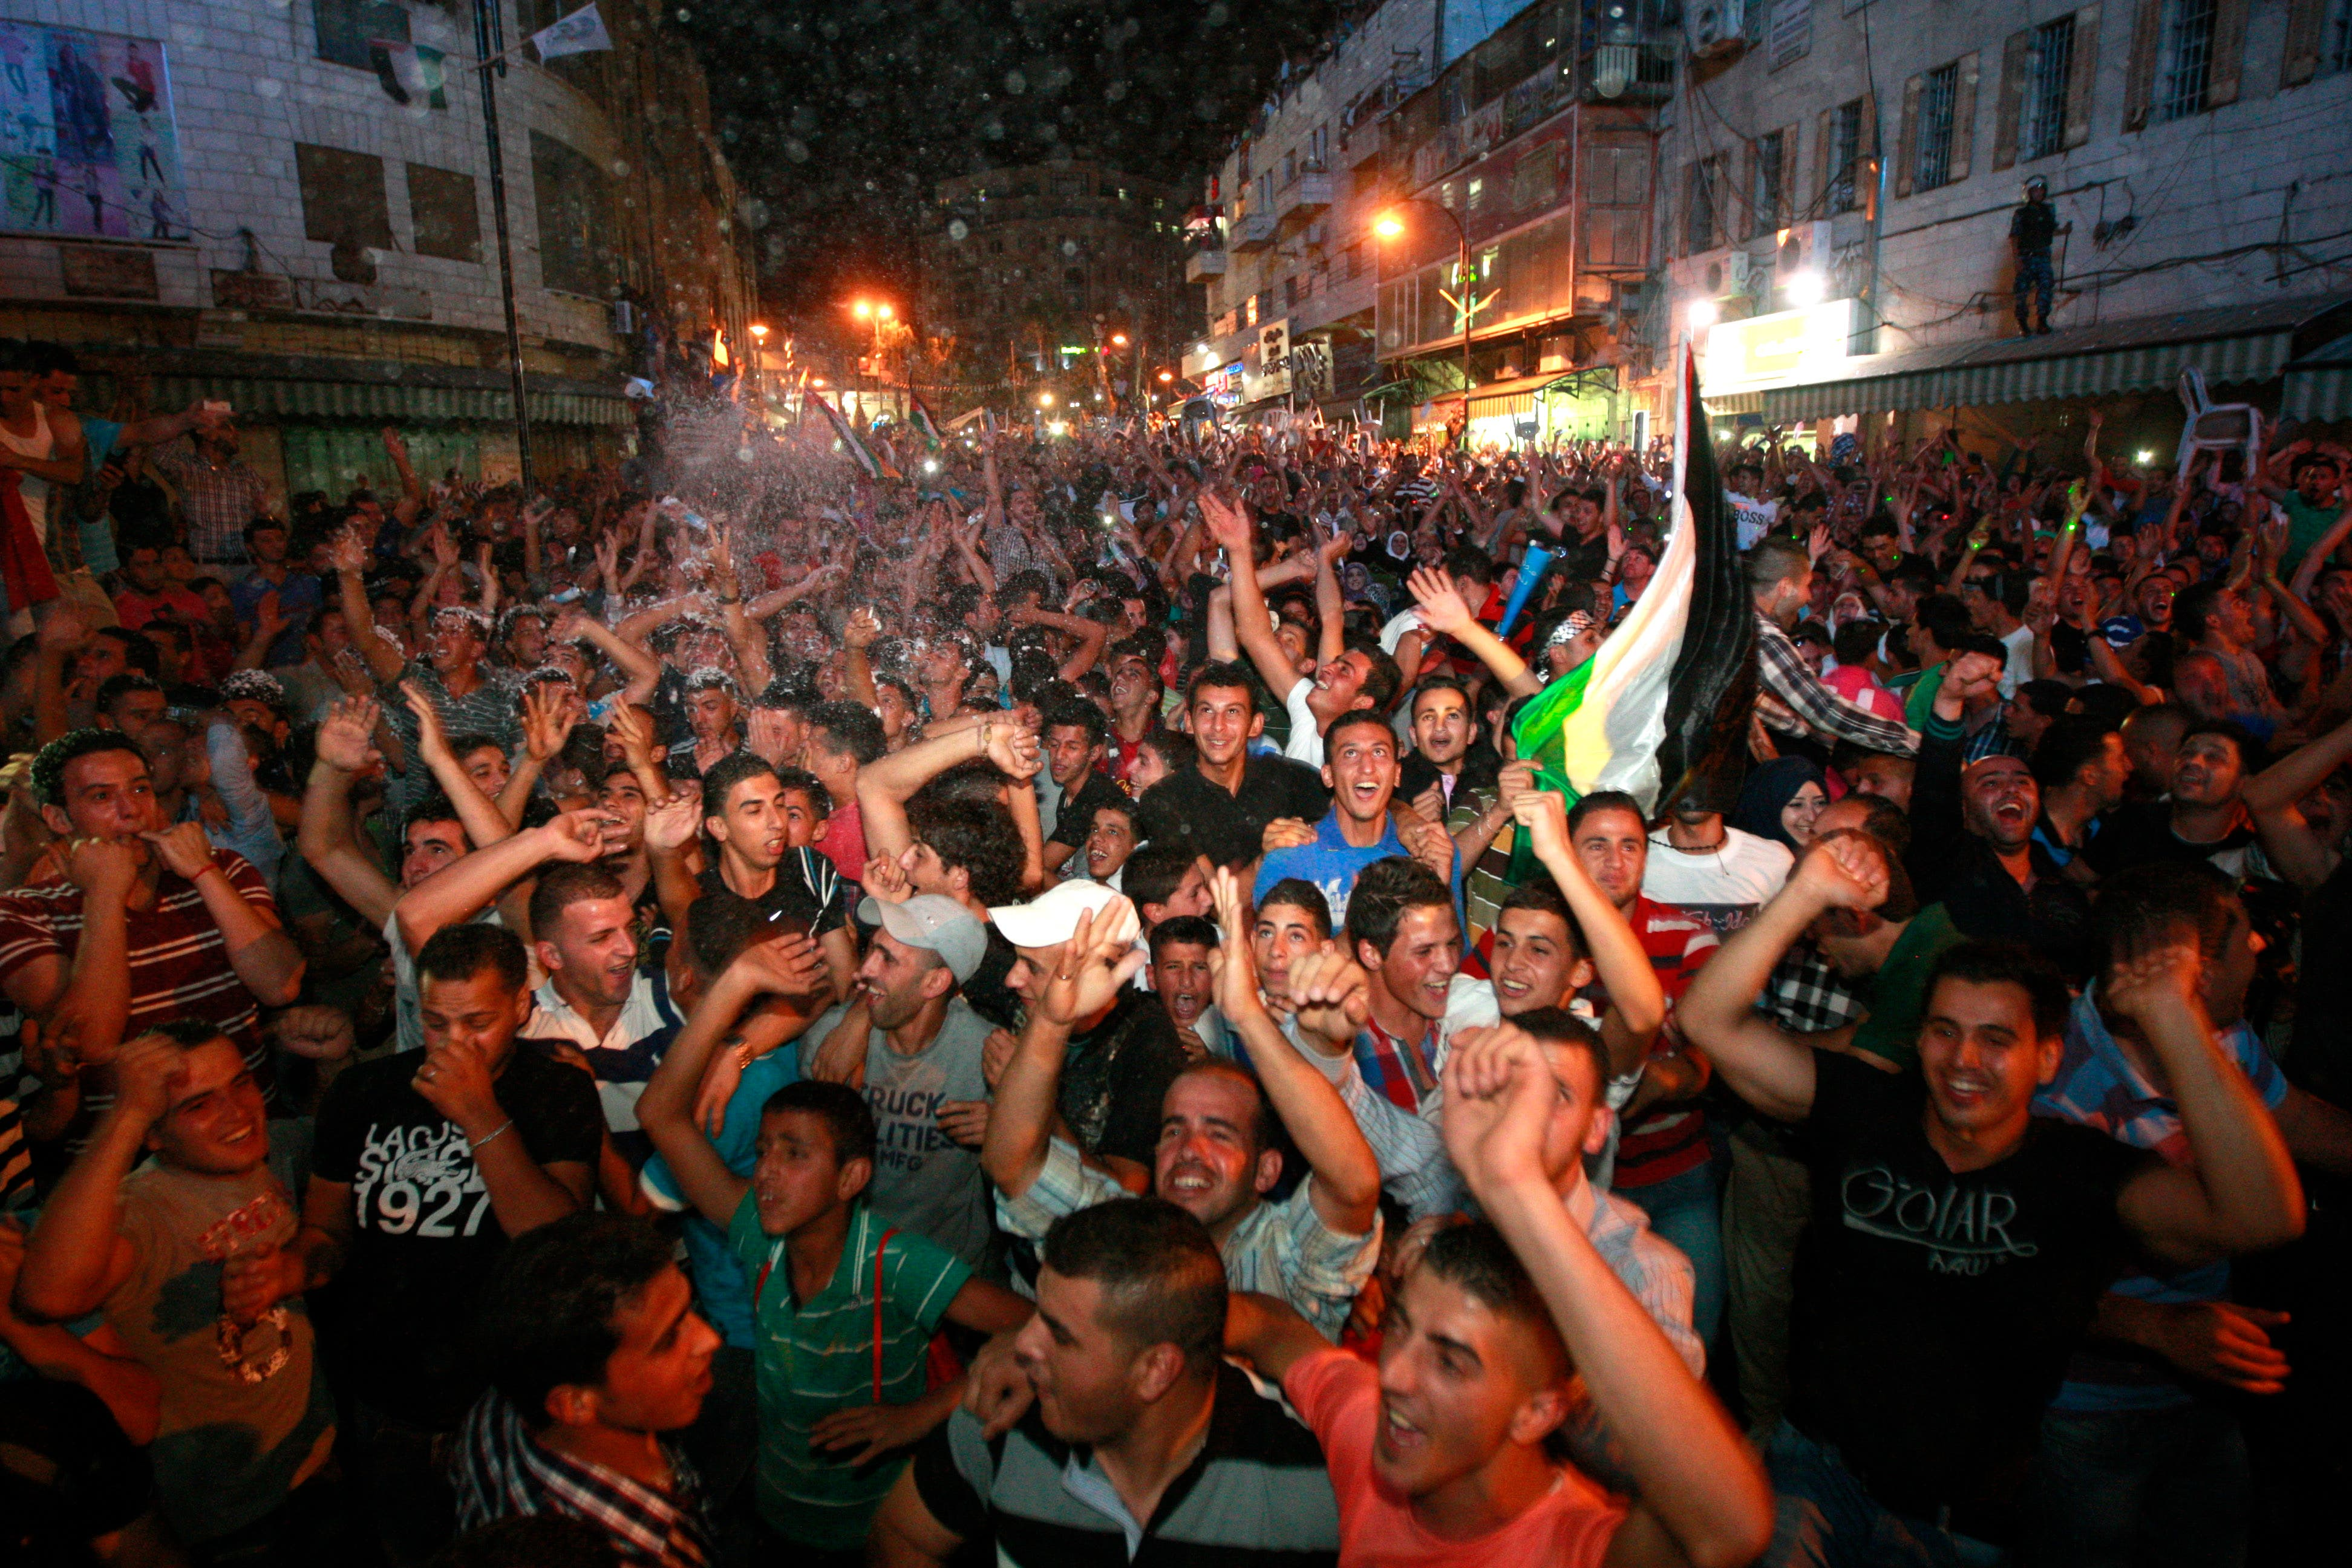 Palestinians celebrate after Palestinian singer Mohammed Assaf won a regional TV singing contest, in the West Bank city of Ramallah, Saturday, June 22, 2013. (AP)